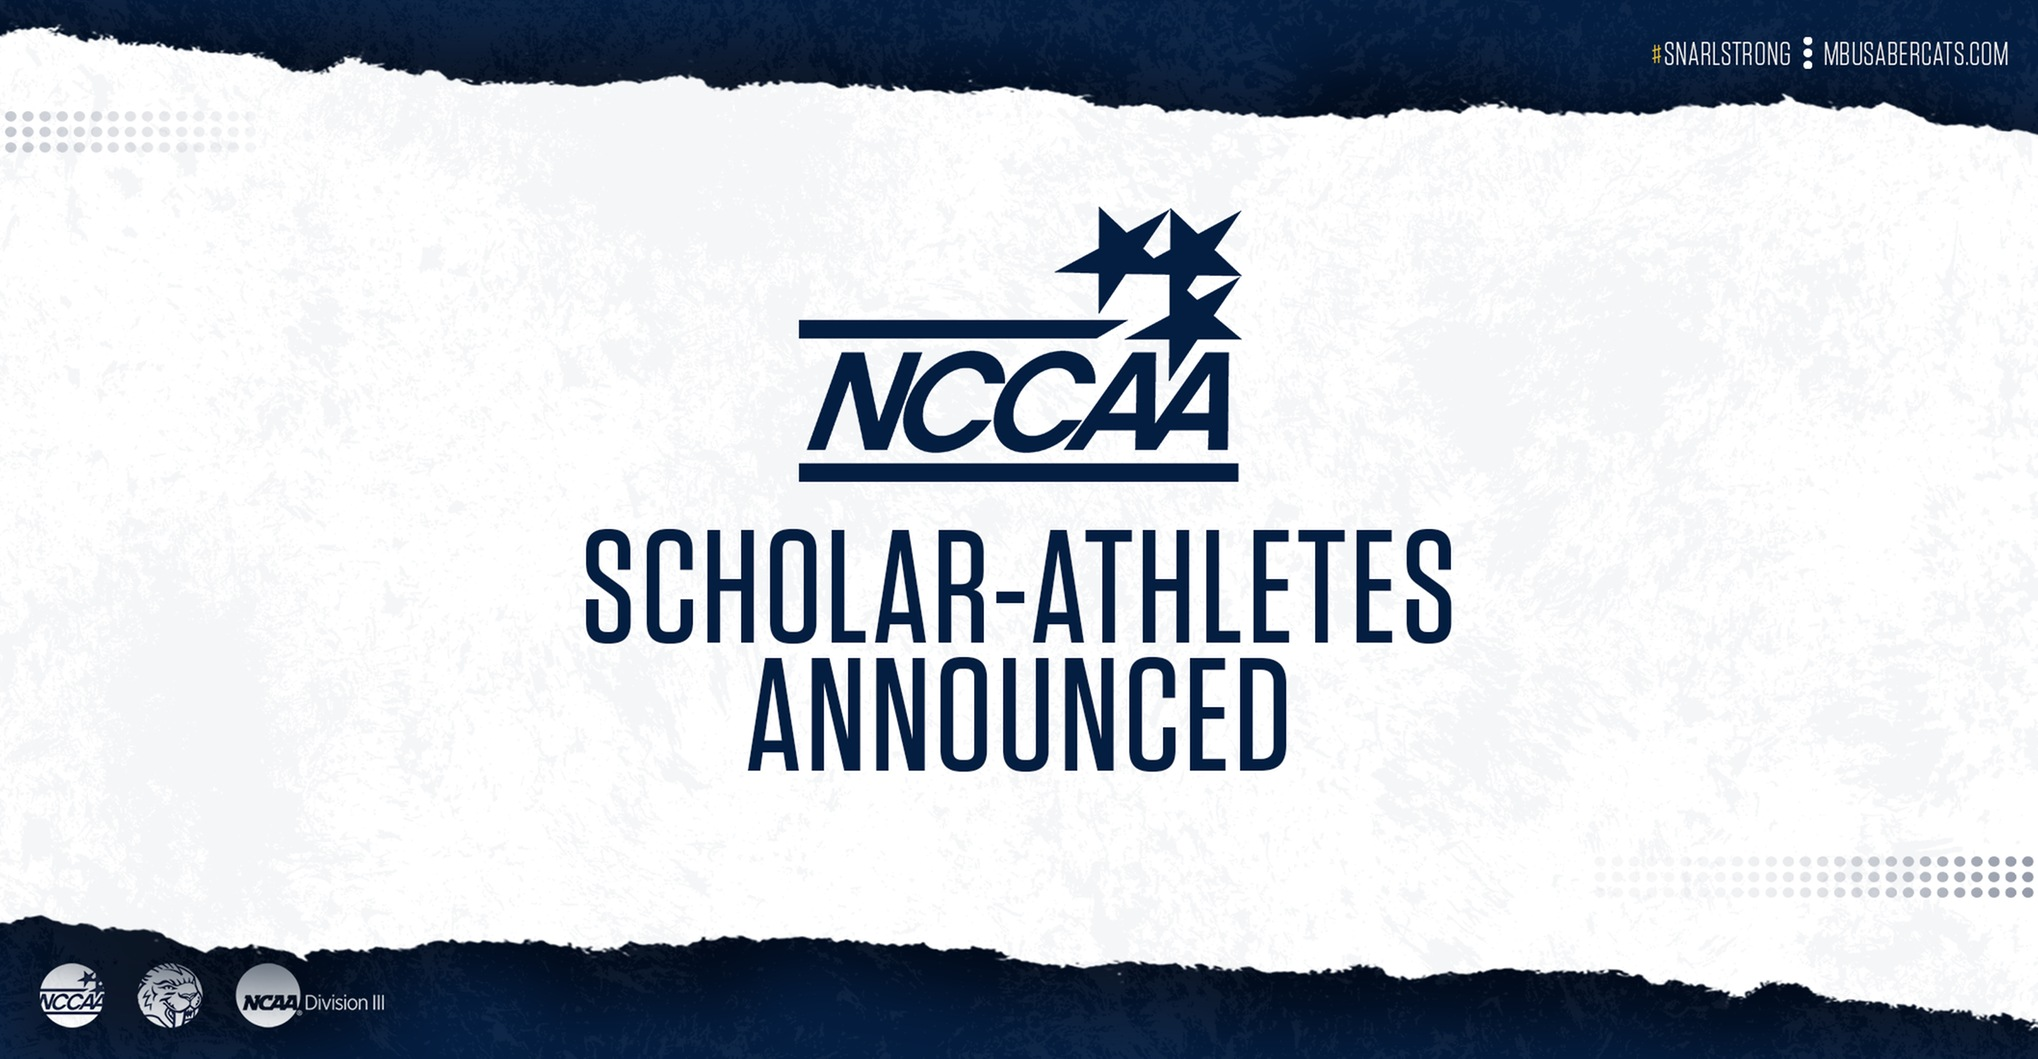 NCCAA Scholar-Athletes Recognized